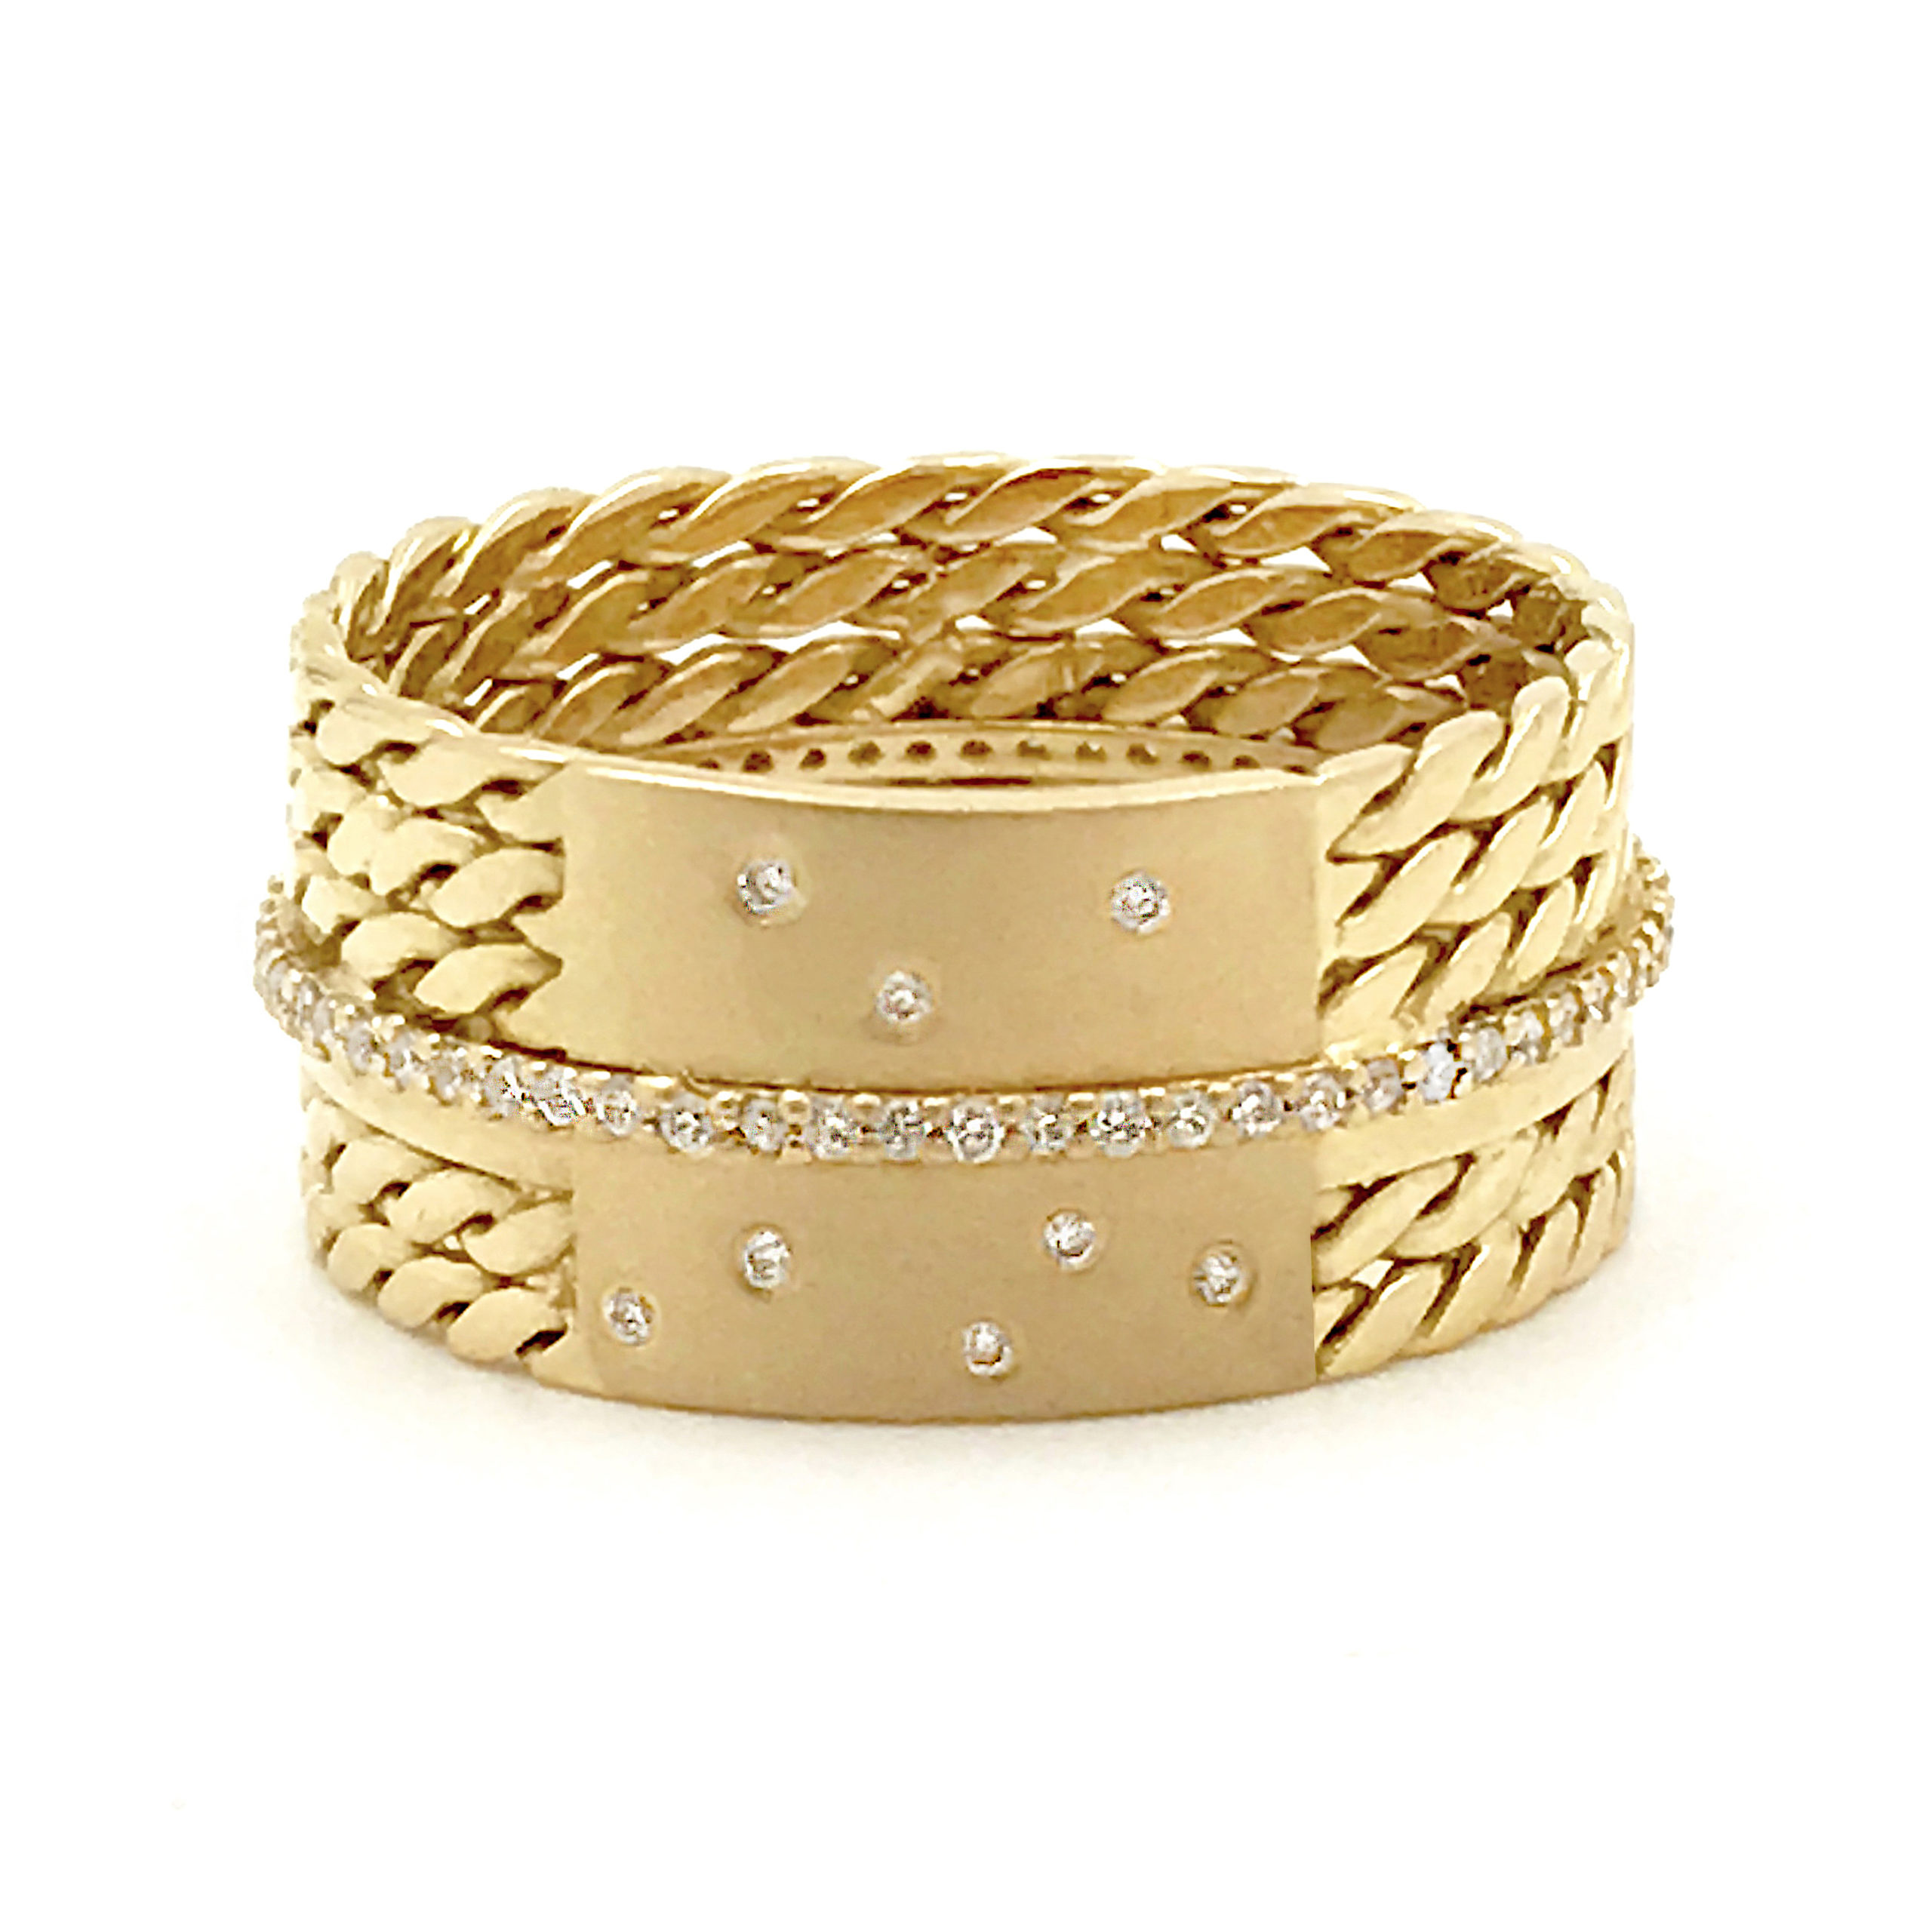 18k-Twist-Mesh-Center-Pave-Diamond-Belt-Shield-Cigar-Band